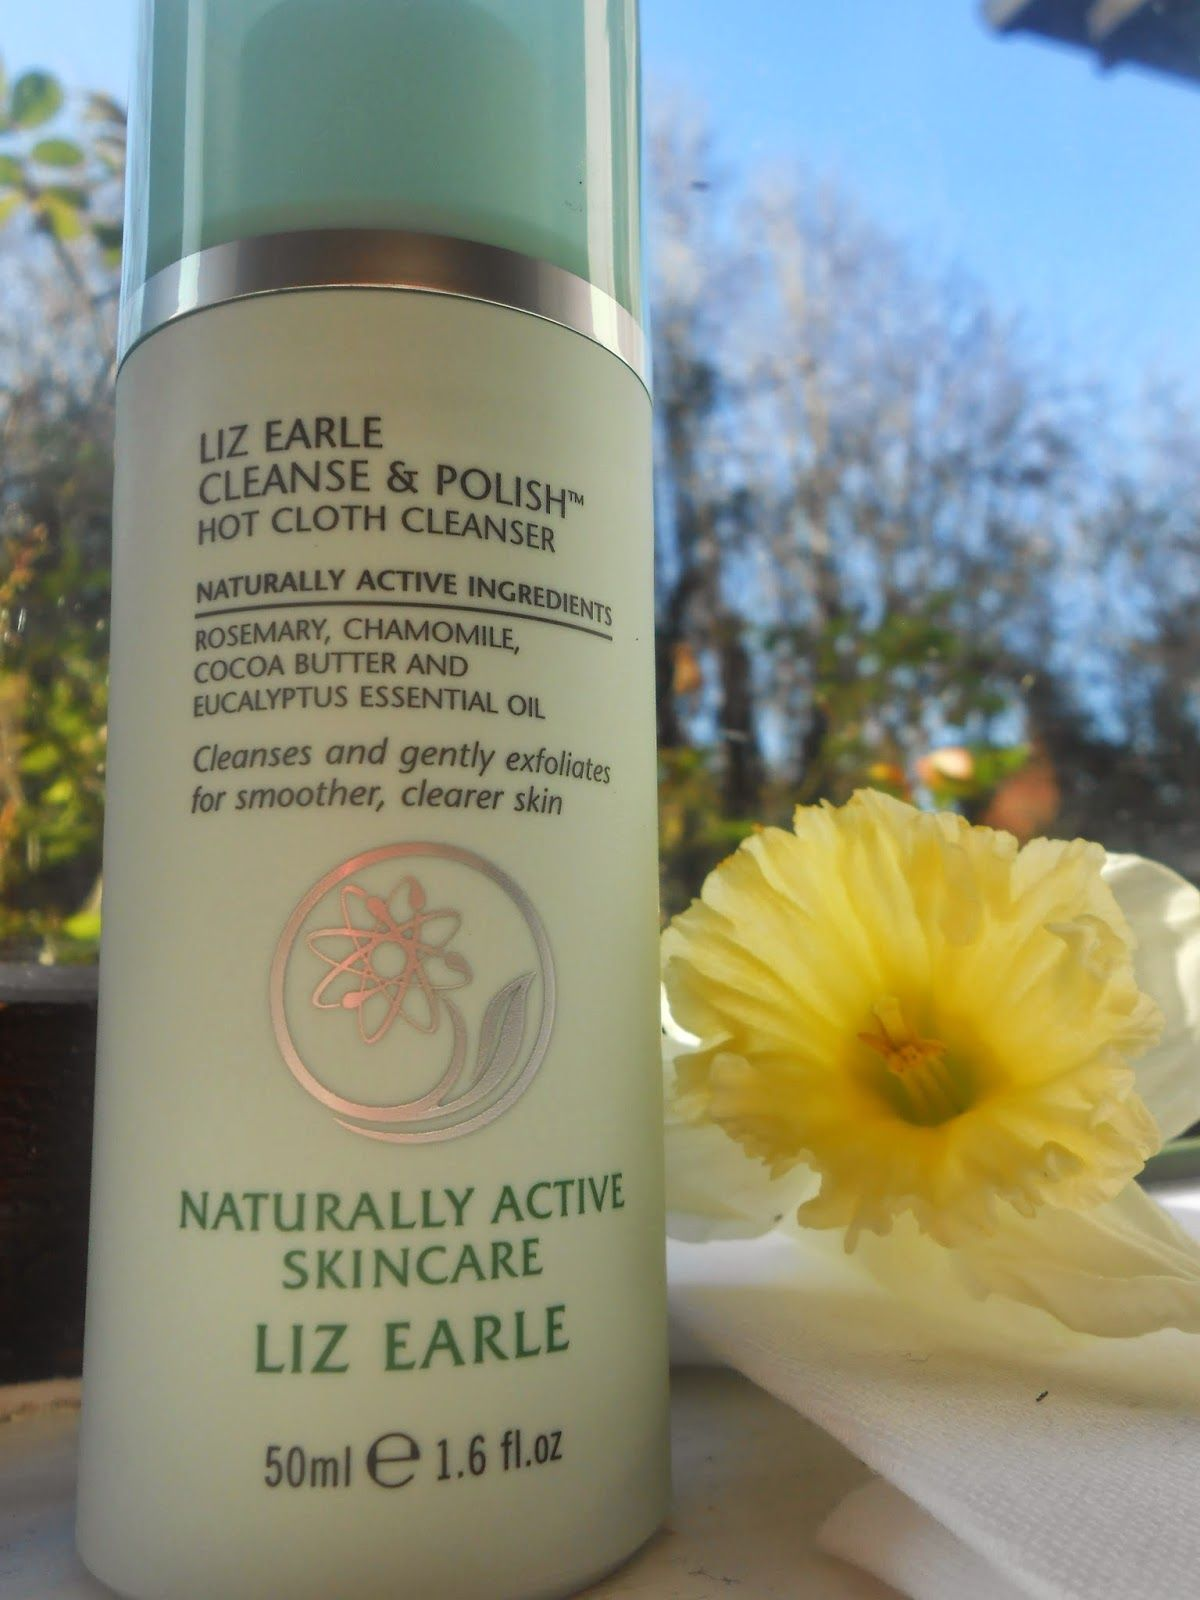 Liz Earle cleanse and polish review #bbloggers #review